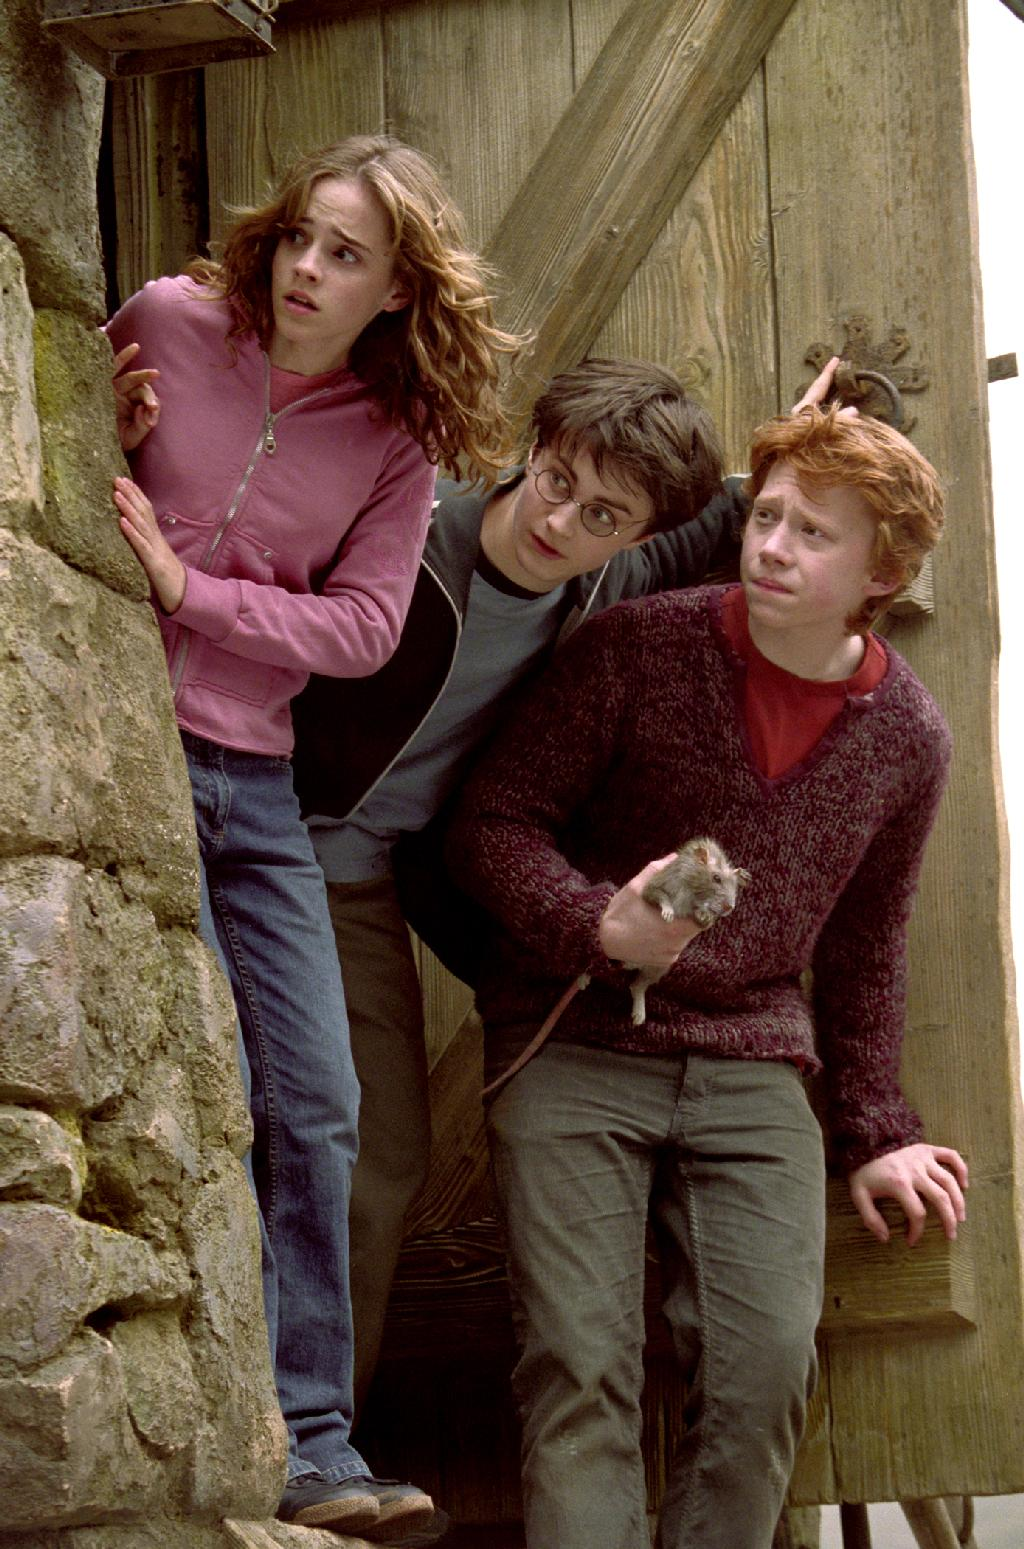 http://1.bp.blogspot.com/_WLlVyep2x5Q/TN1Gz2L6sXI/AAAAAAAAB58/m1bQSgD16I4/s1600/2003_harry_potter_and_prisoner_of_azkaban_004.jpg